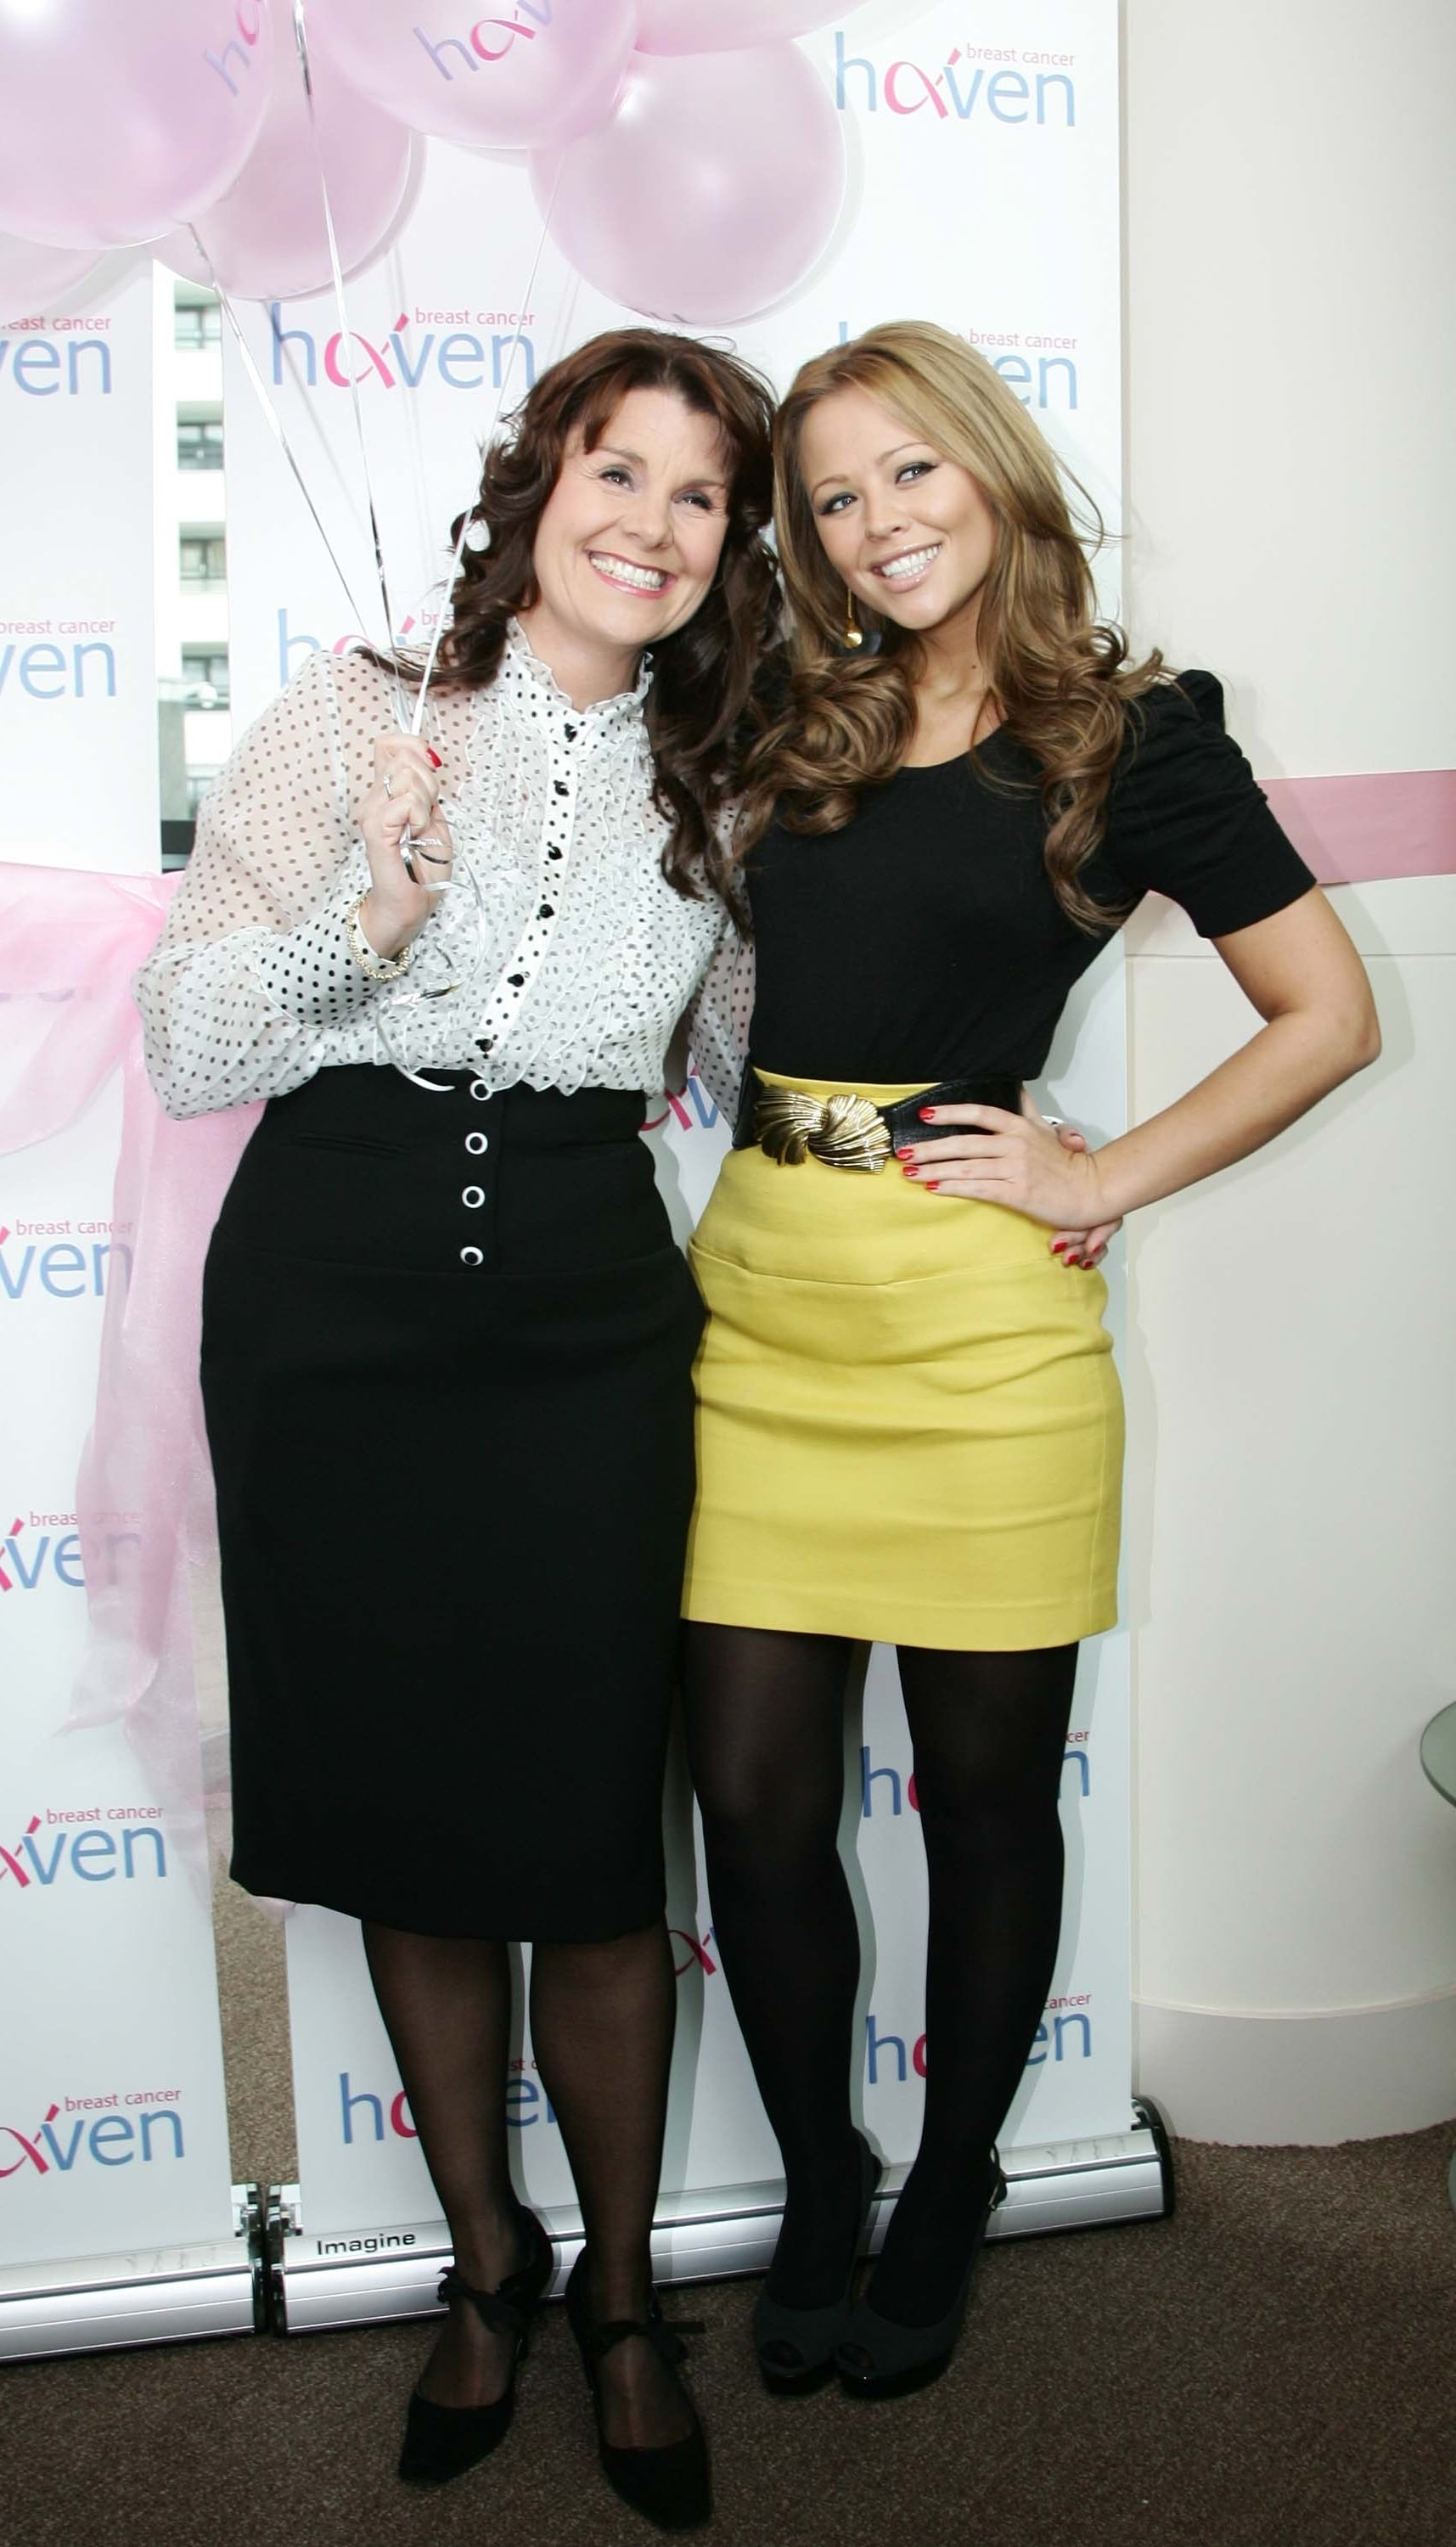 One Source Auto >> Photos of Girls Aloud's Kimberley Walsh Opening a Haven Breast Cancer Centre in Leeds | POPSUGAR ...